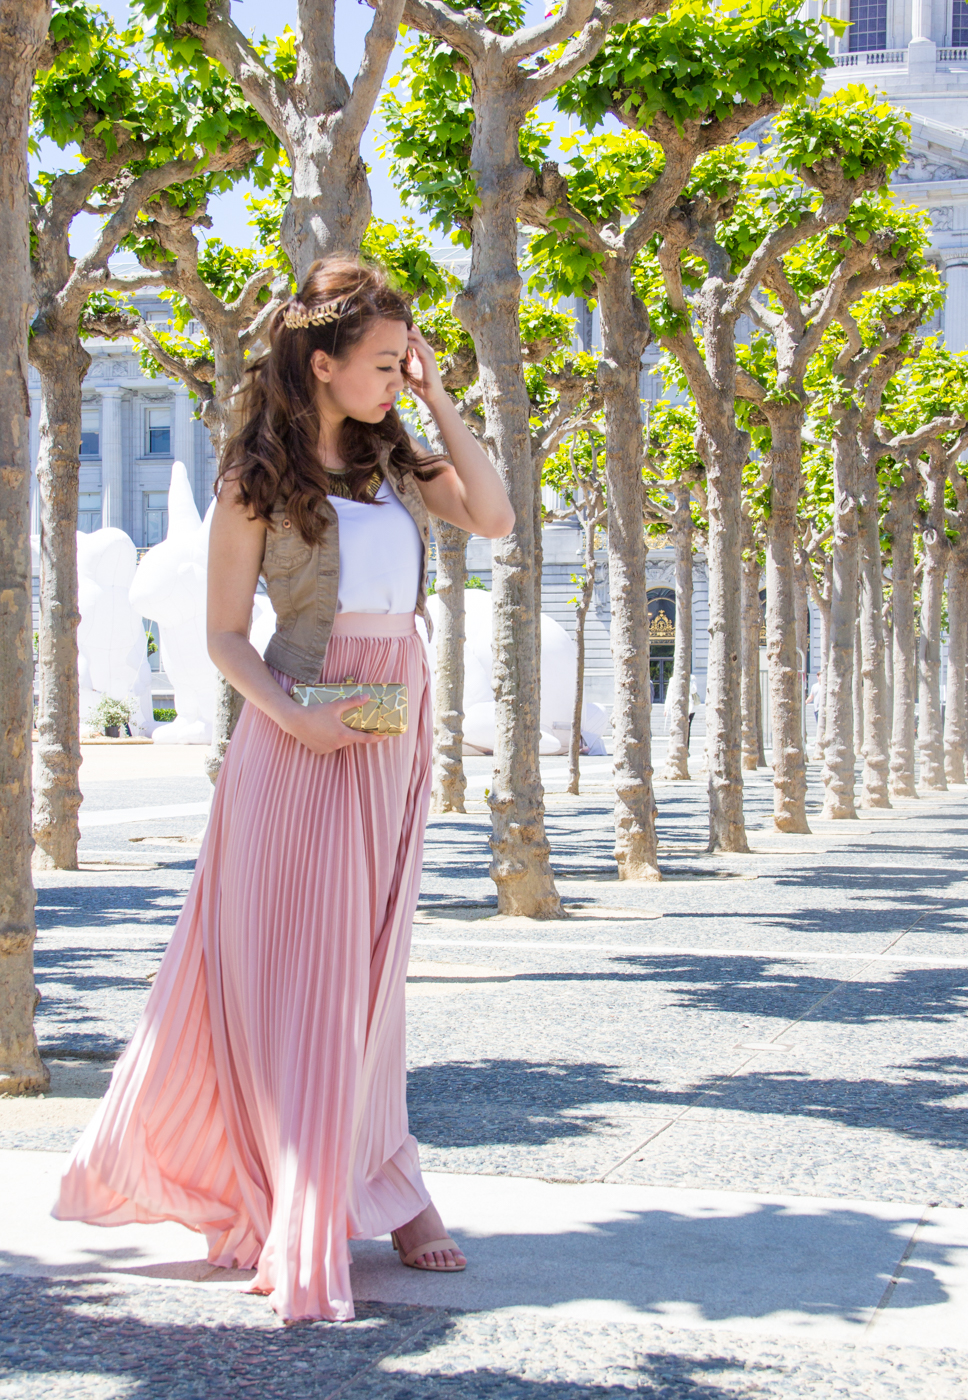 05.19.16: Grecian Vibes | Rose Pleated Maxi Skirt & Gold Accents